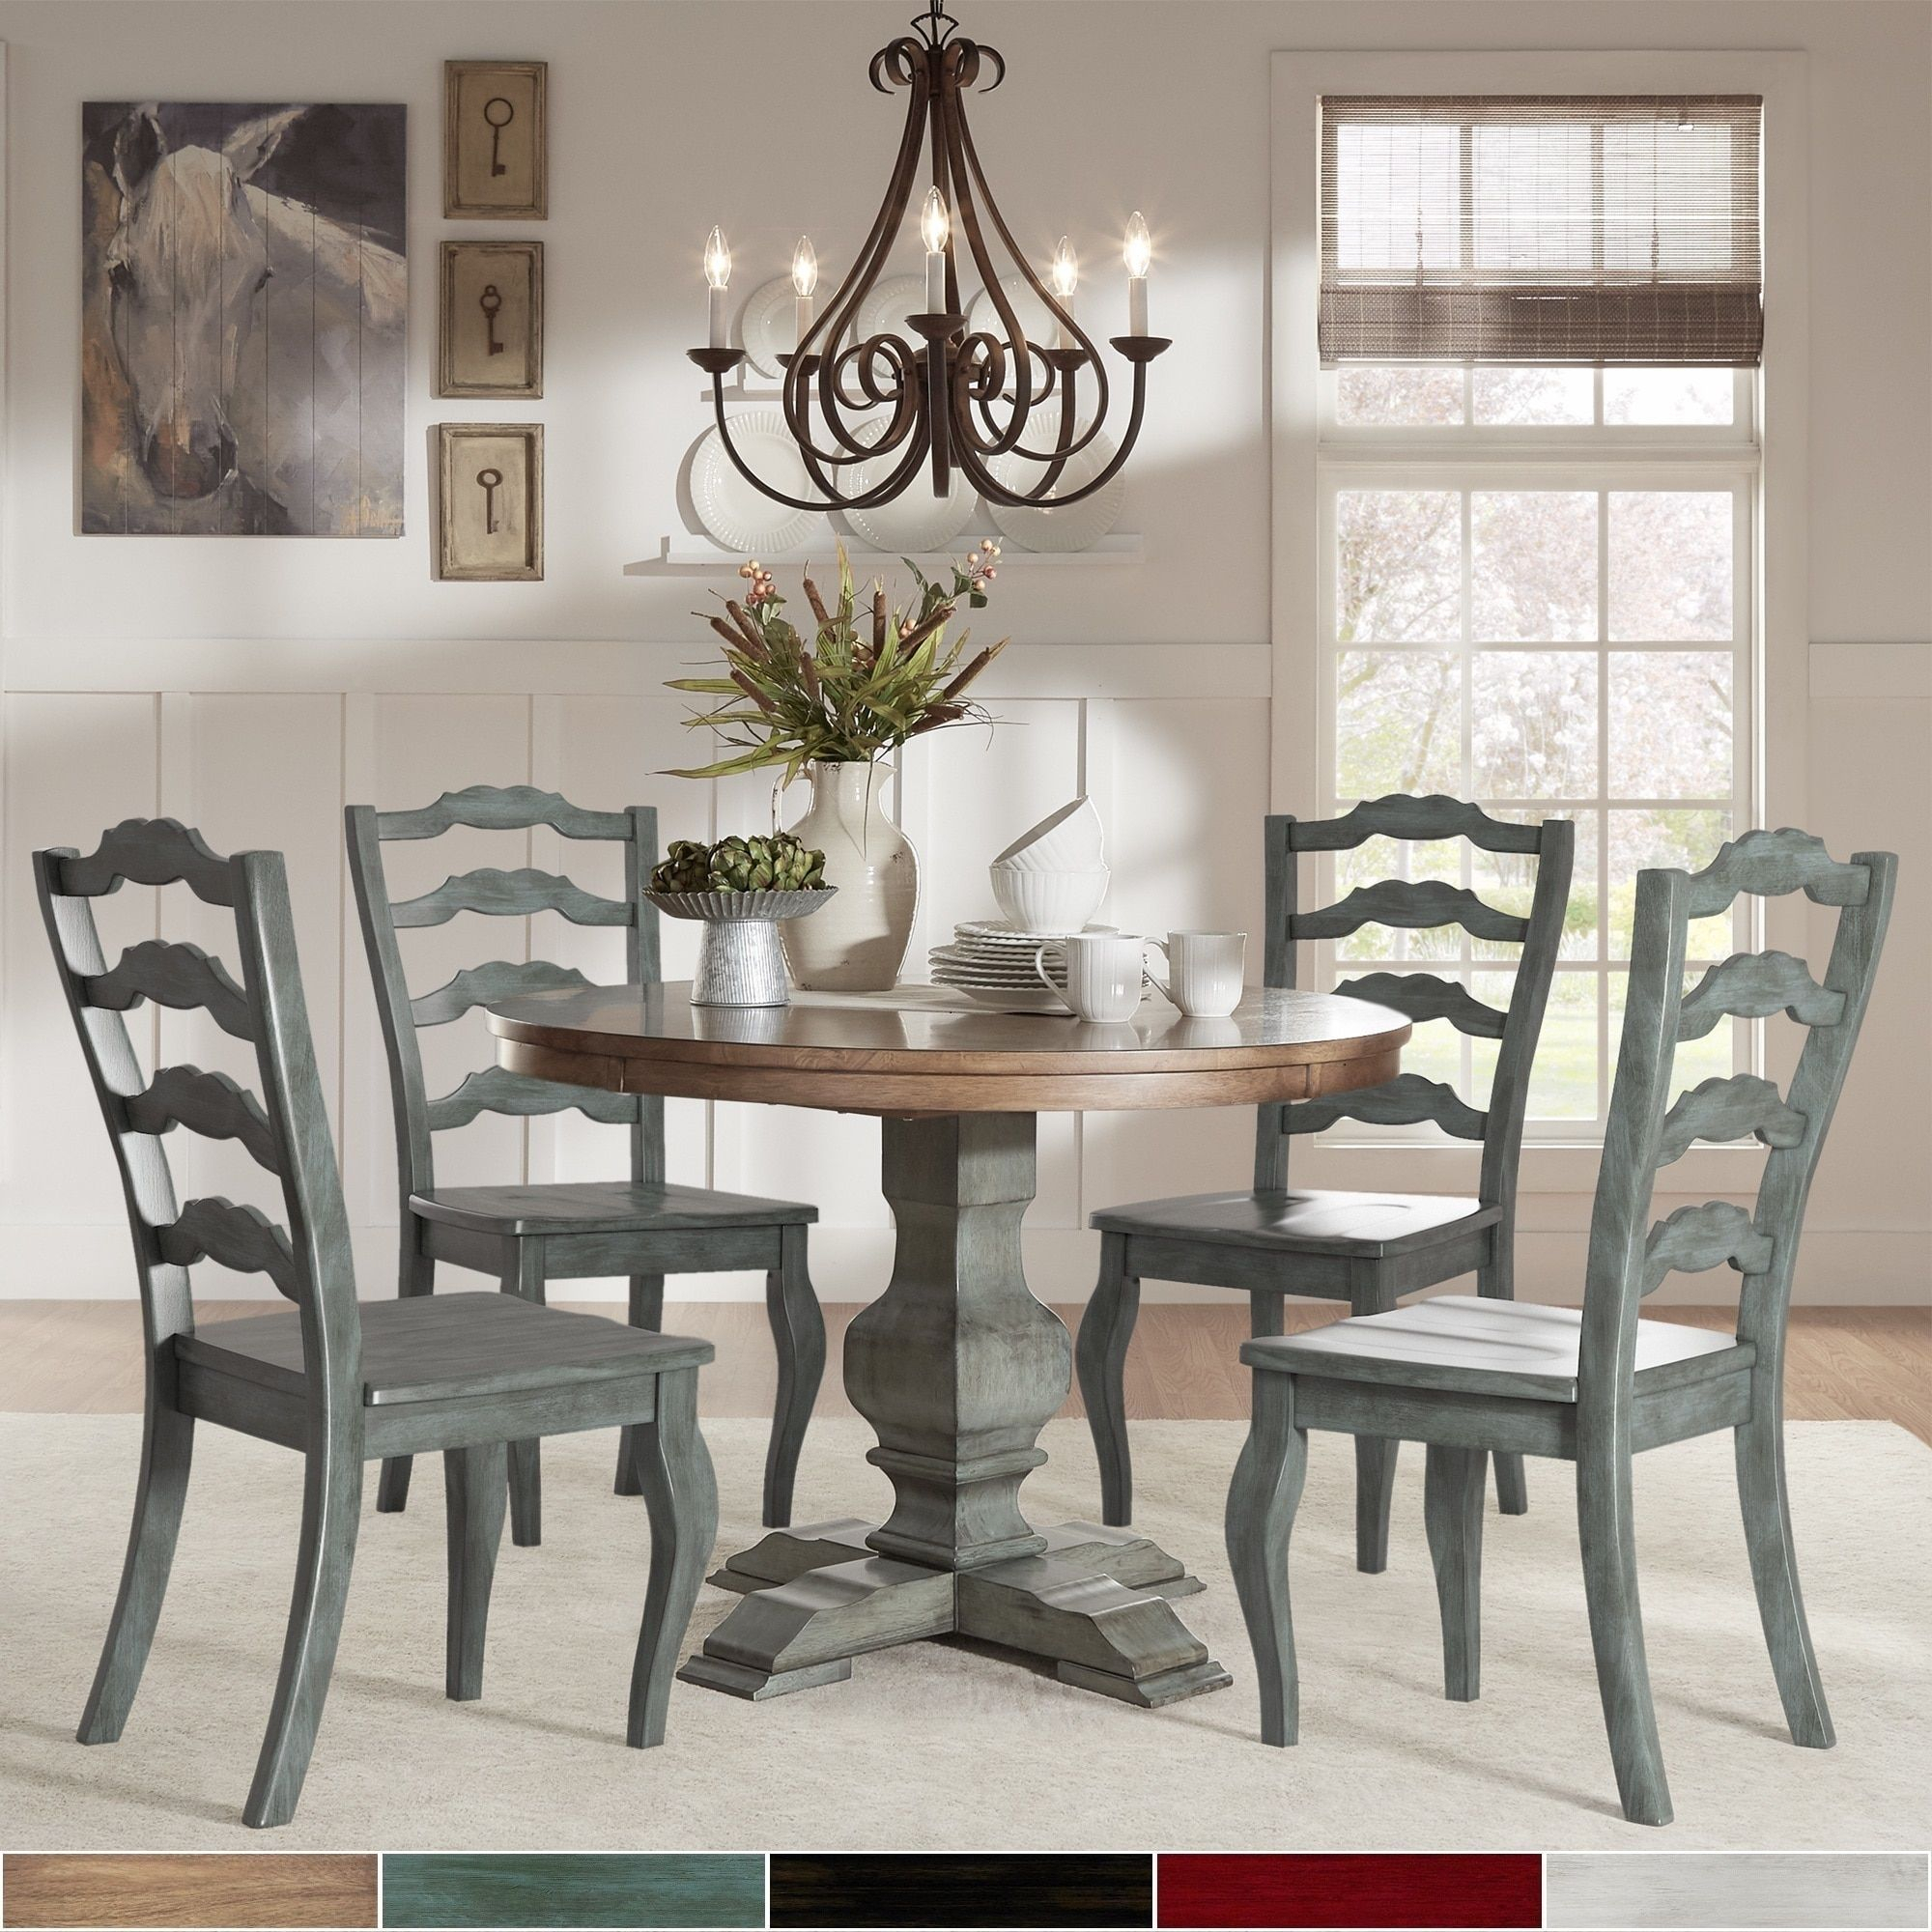 Eleanor Sage Green Round Solid Wood Top Ladder Back 5 Piece Throughout Most Popular Gray Wash Livingston Extending Dining Tables (View 11 of 25)